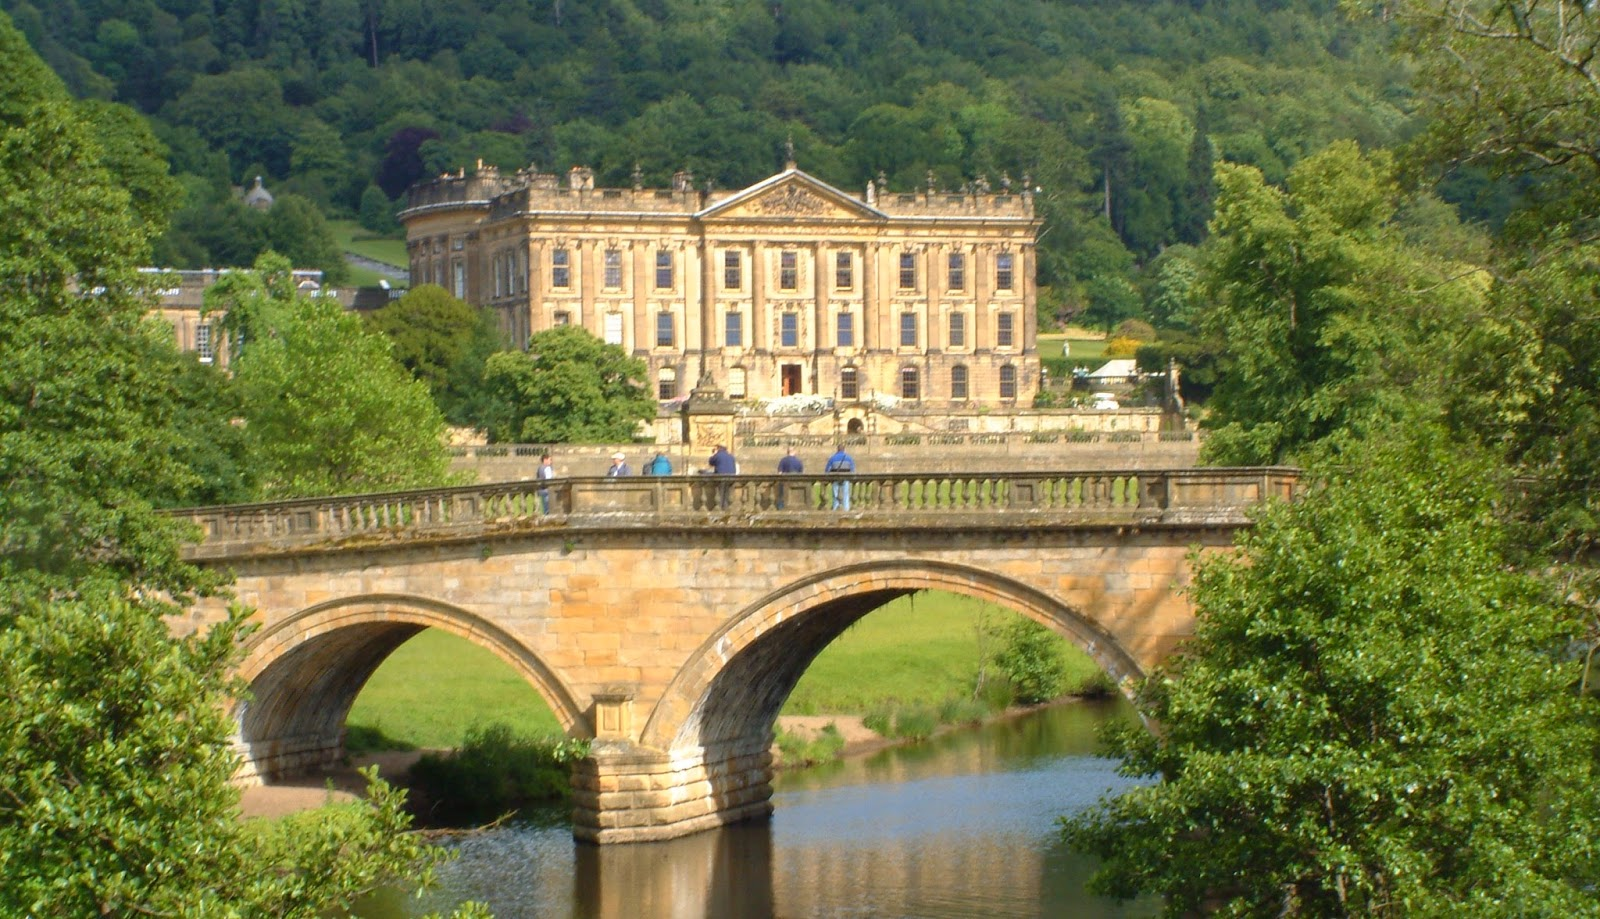 Chatsworth House and Chatsworth Bridge, via Wikimedia